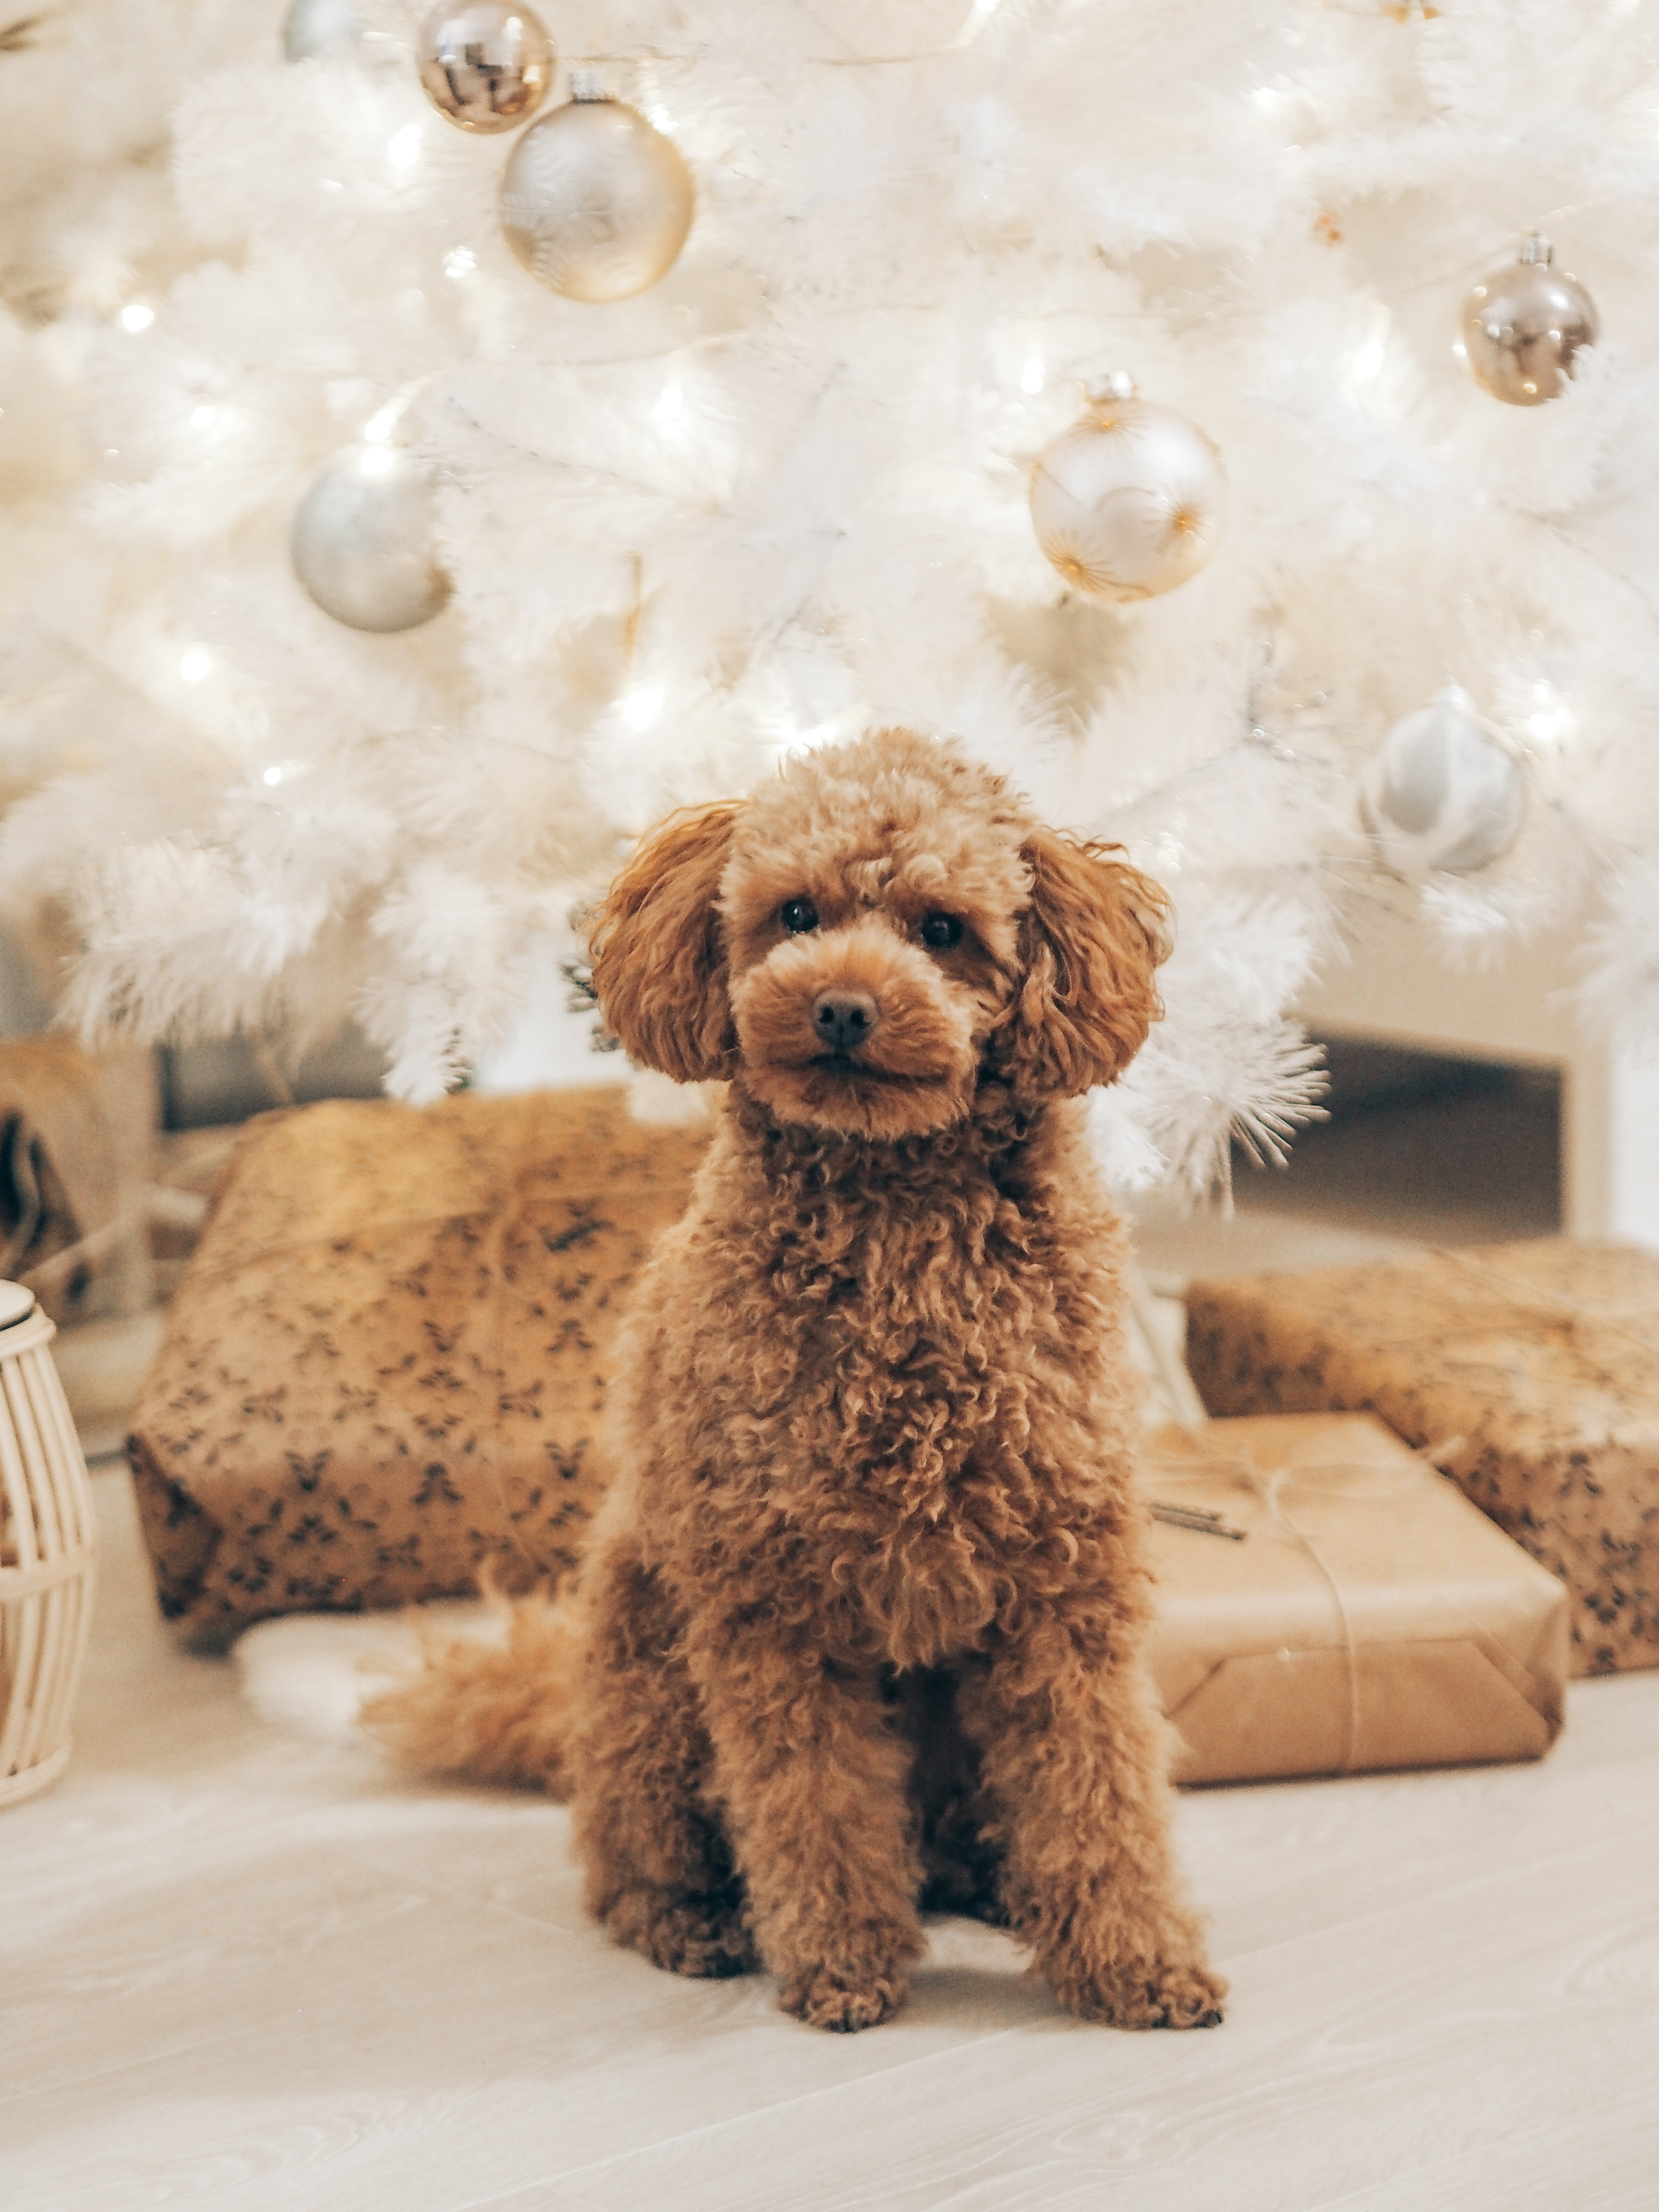 59724 download wallpaper Animals, Poodle, Dog, Pet, Brown, Curly screensavers and pictures for free